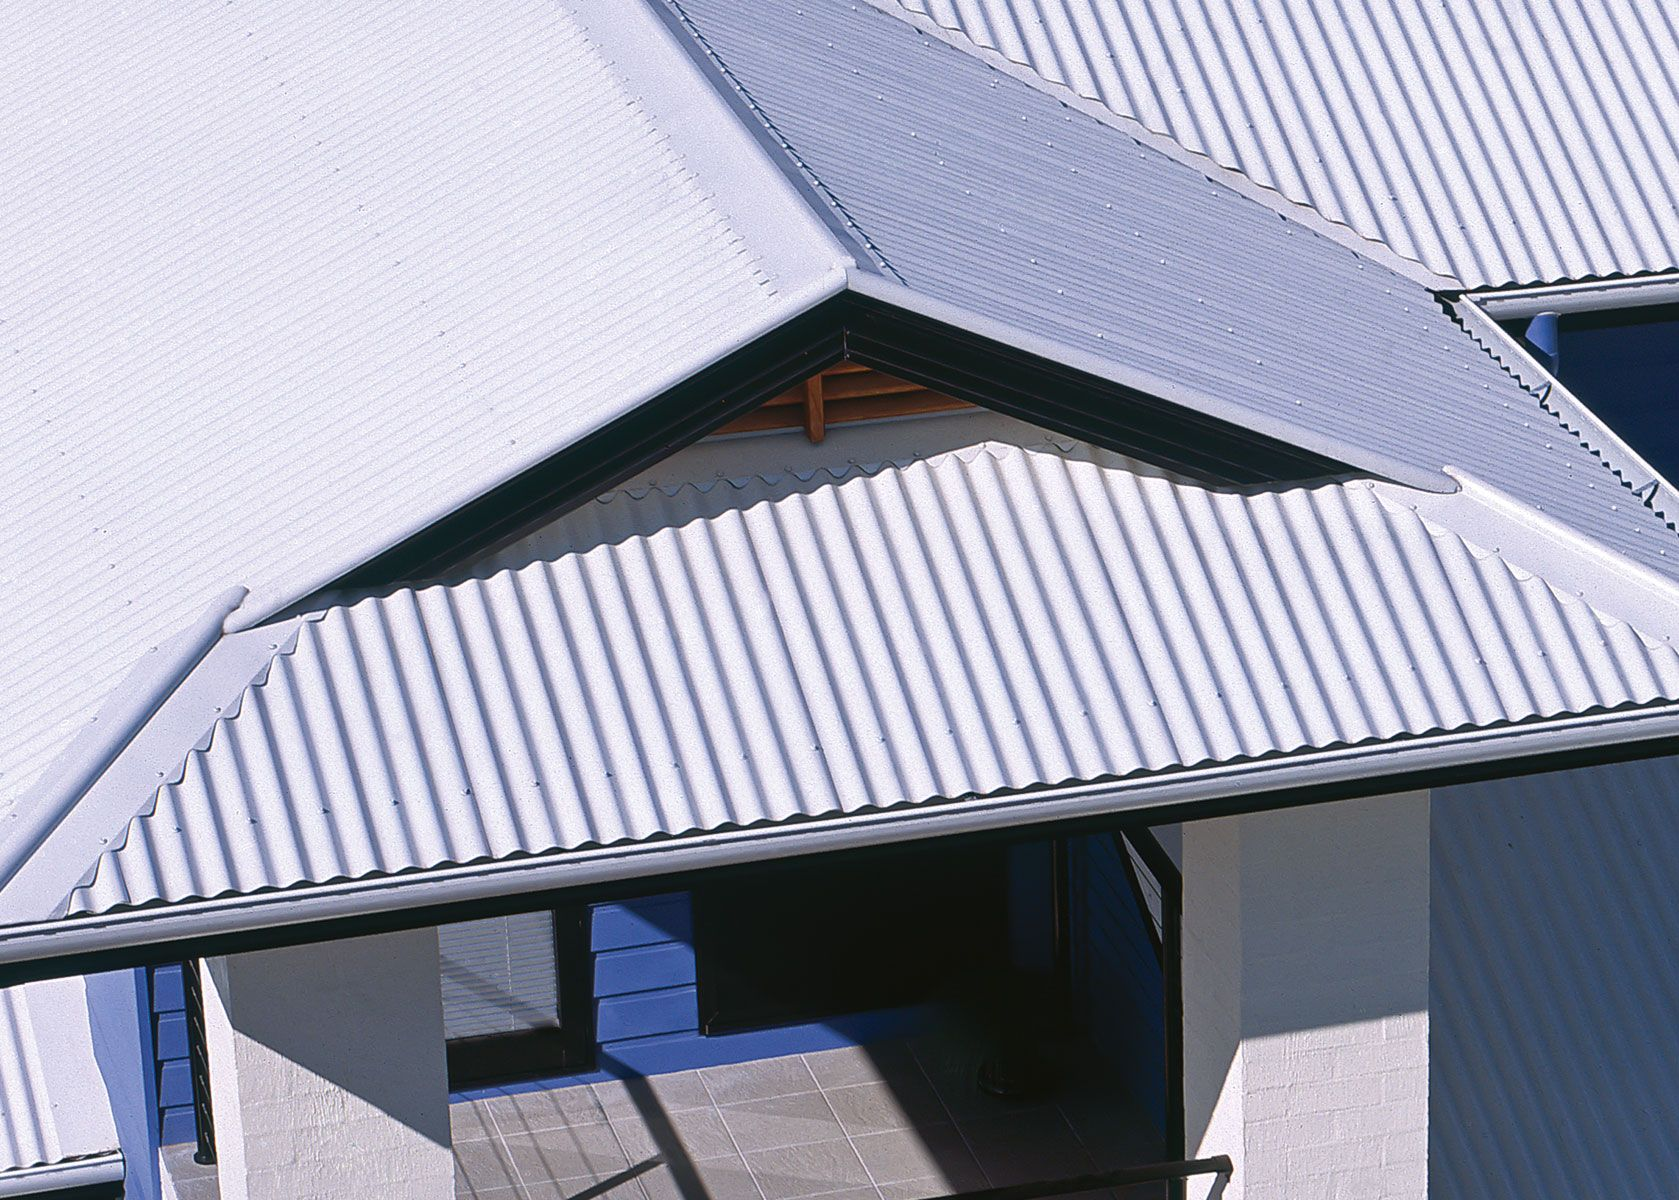 Barge Capping Gable Roof Design Roof Types Roof Design